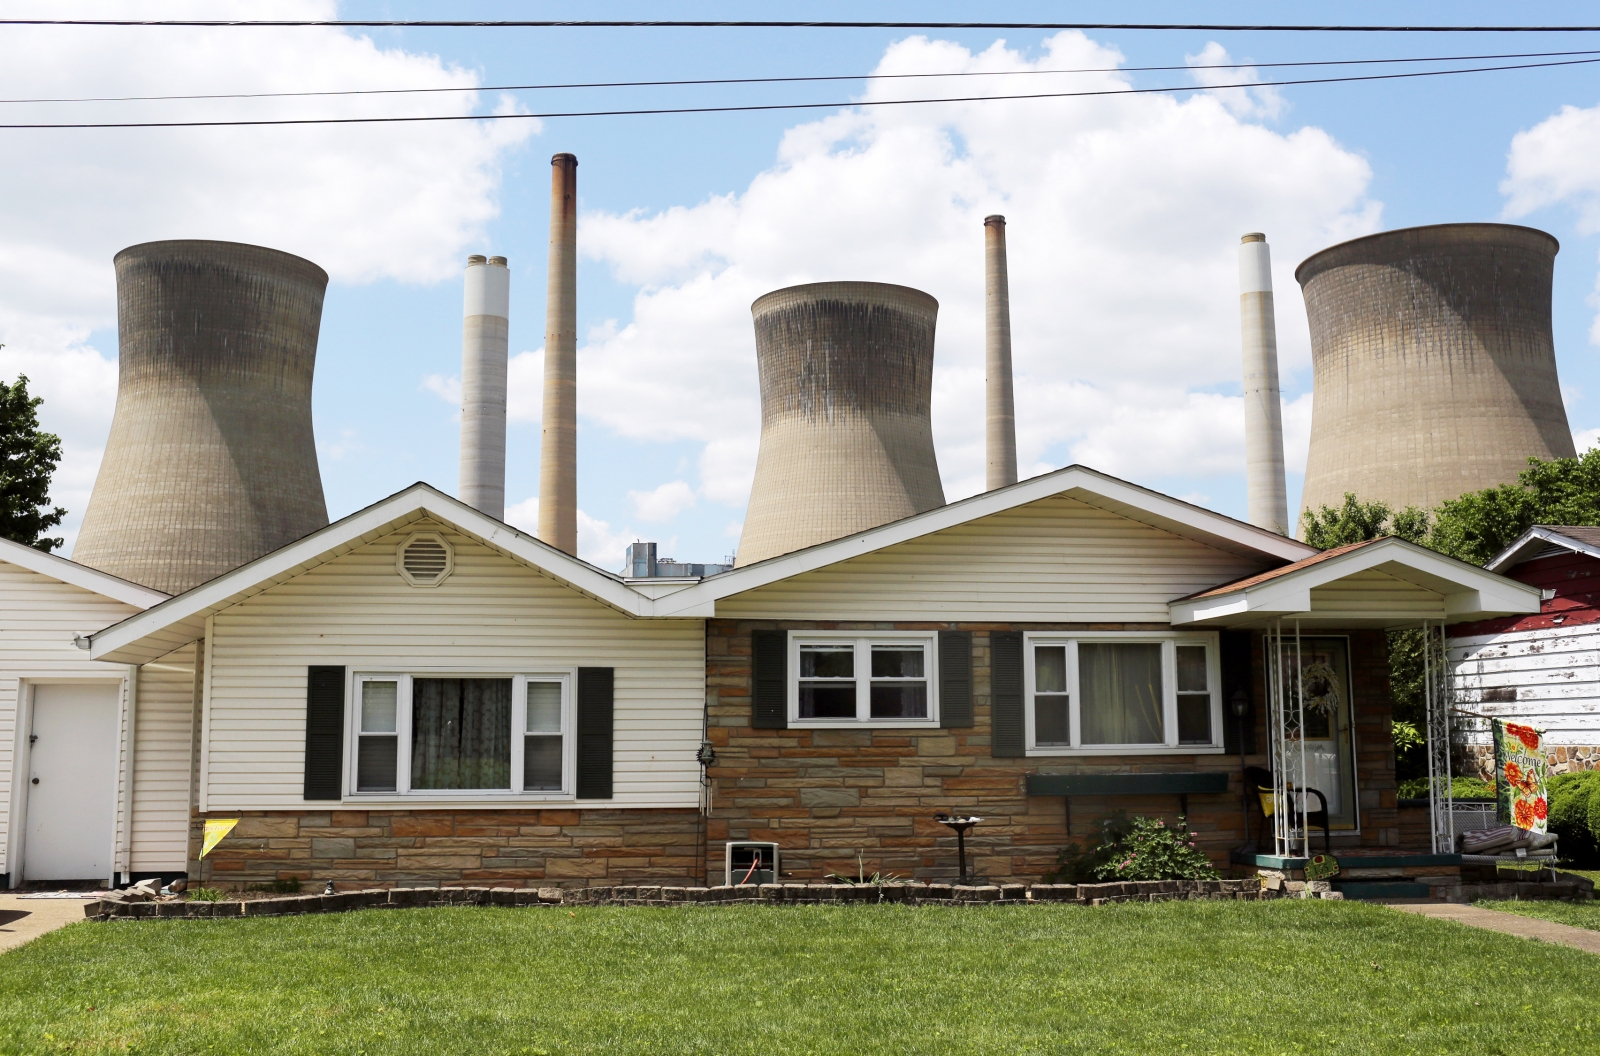 Coal plant seen behind West Virginia home